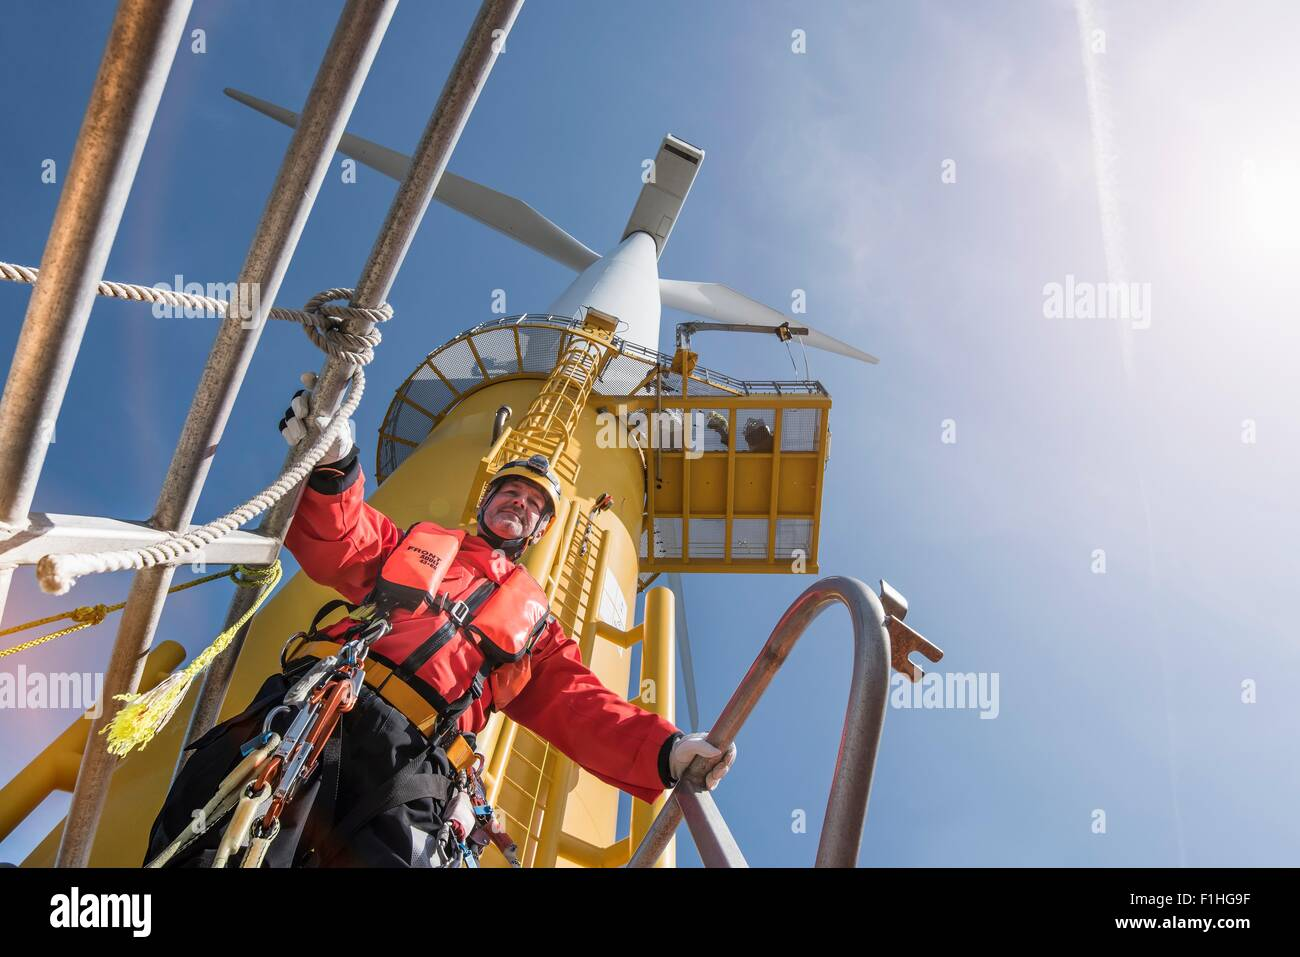 Engineer preparing to climb windturbine at offshore windfarm, low angle view - Stock Image